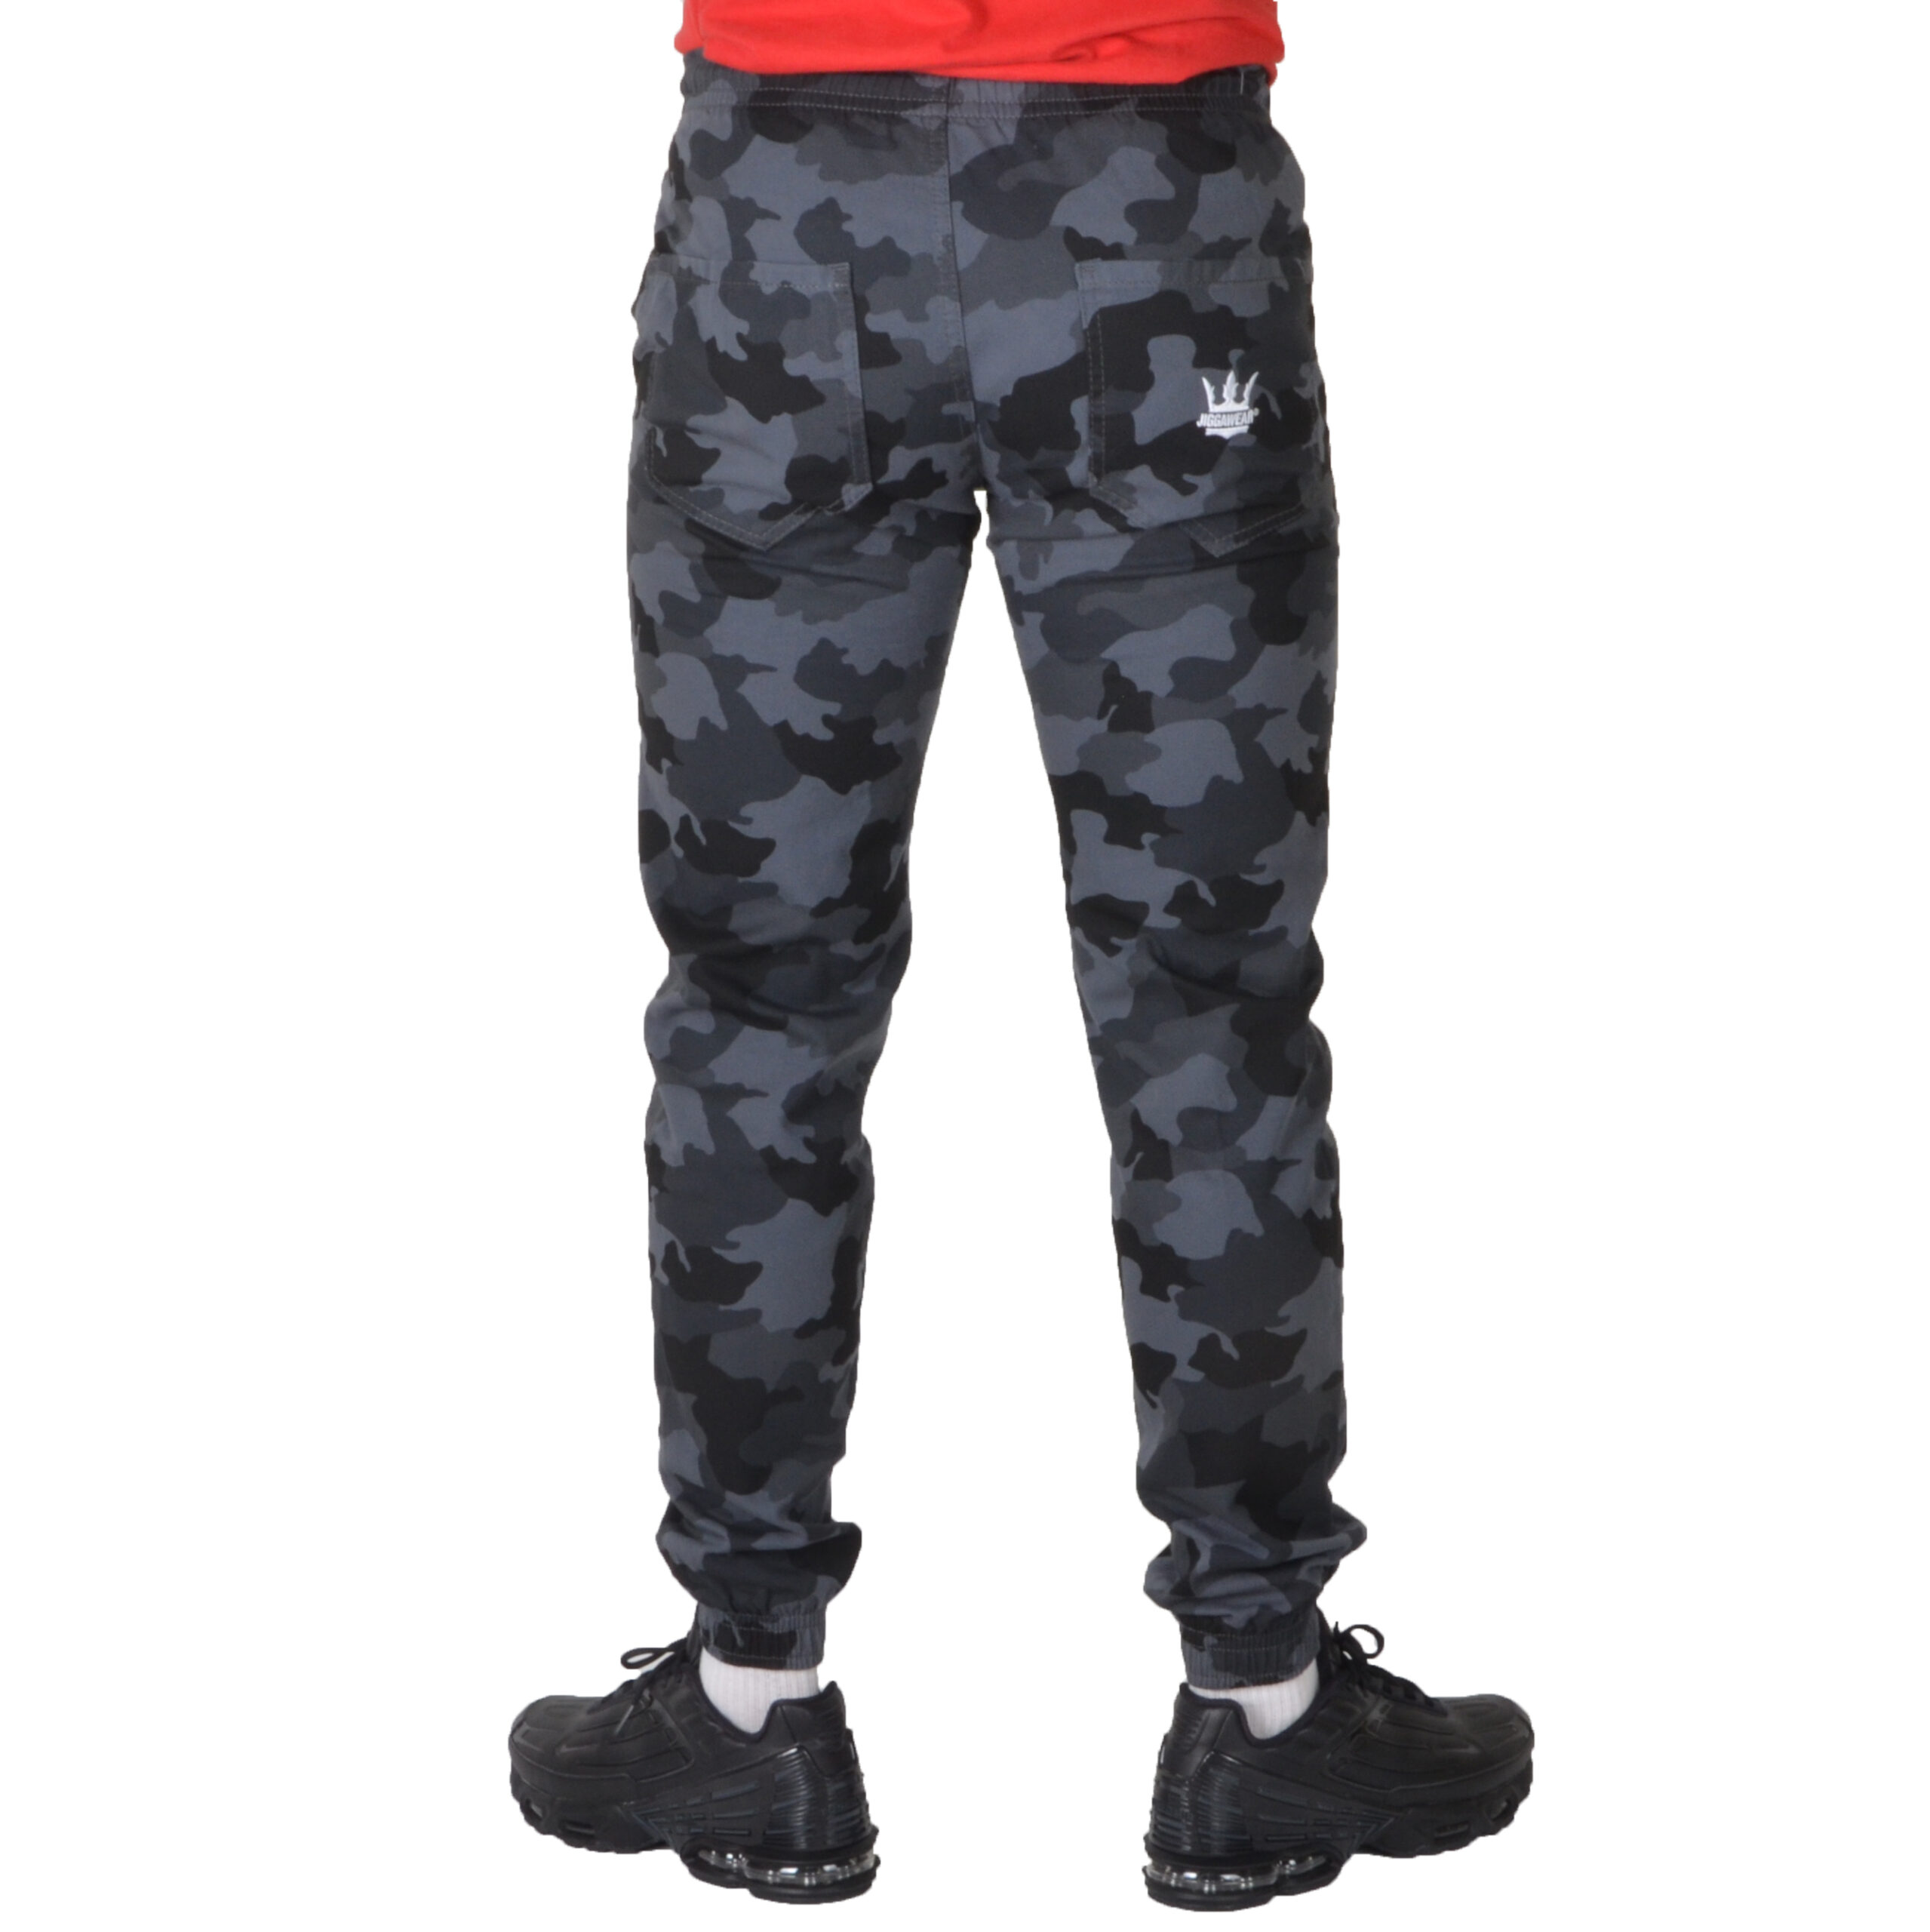 JIGGA WEAR SPODNIE JOGGER CHINO CROWN CAMO GREY